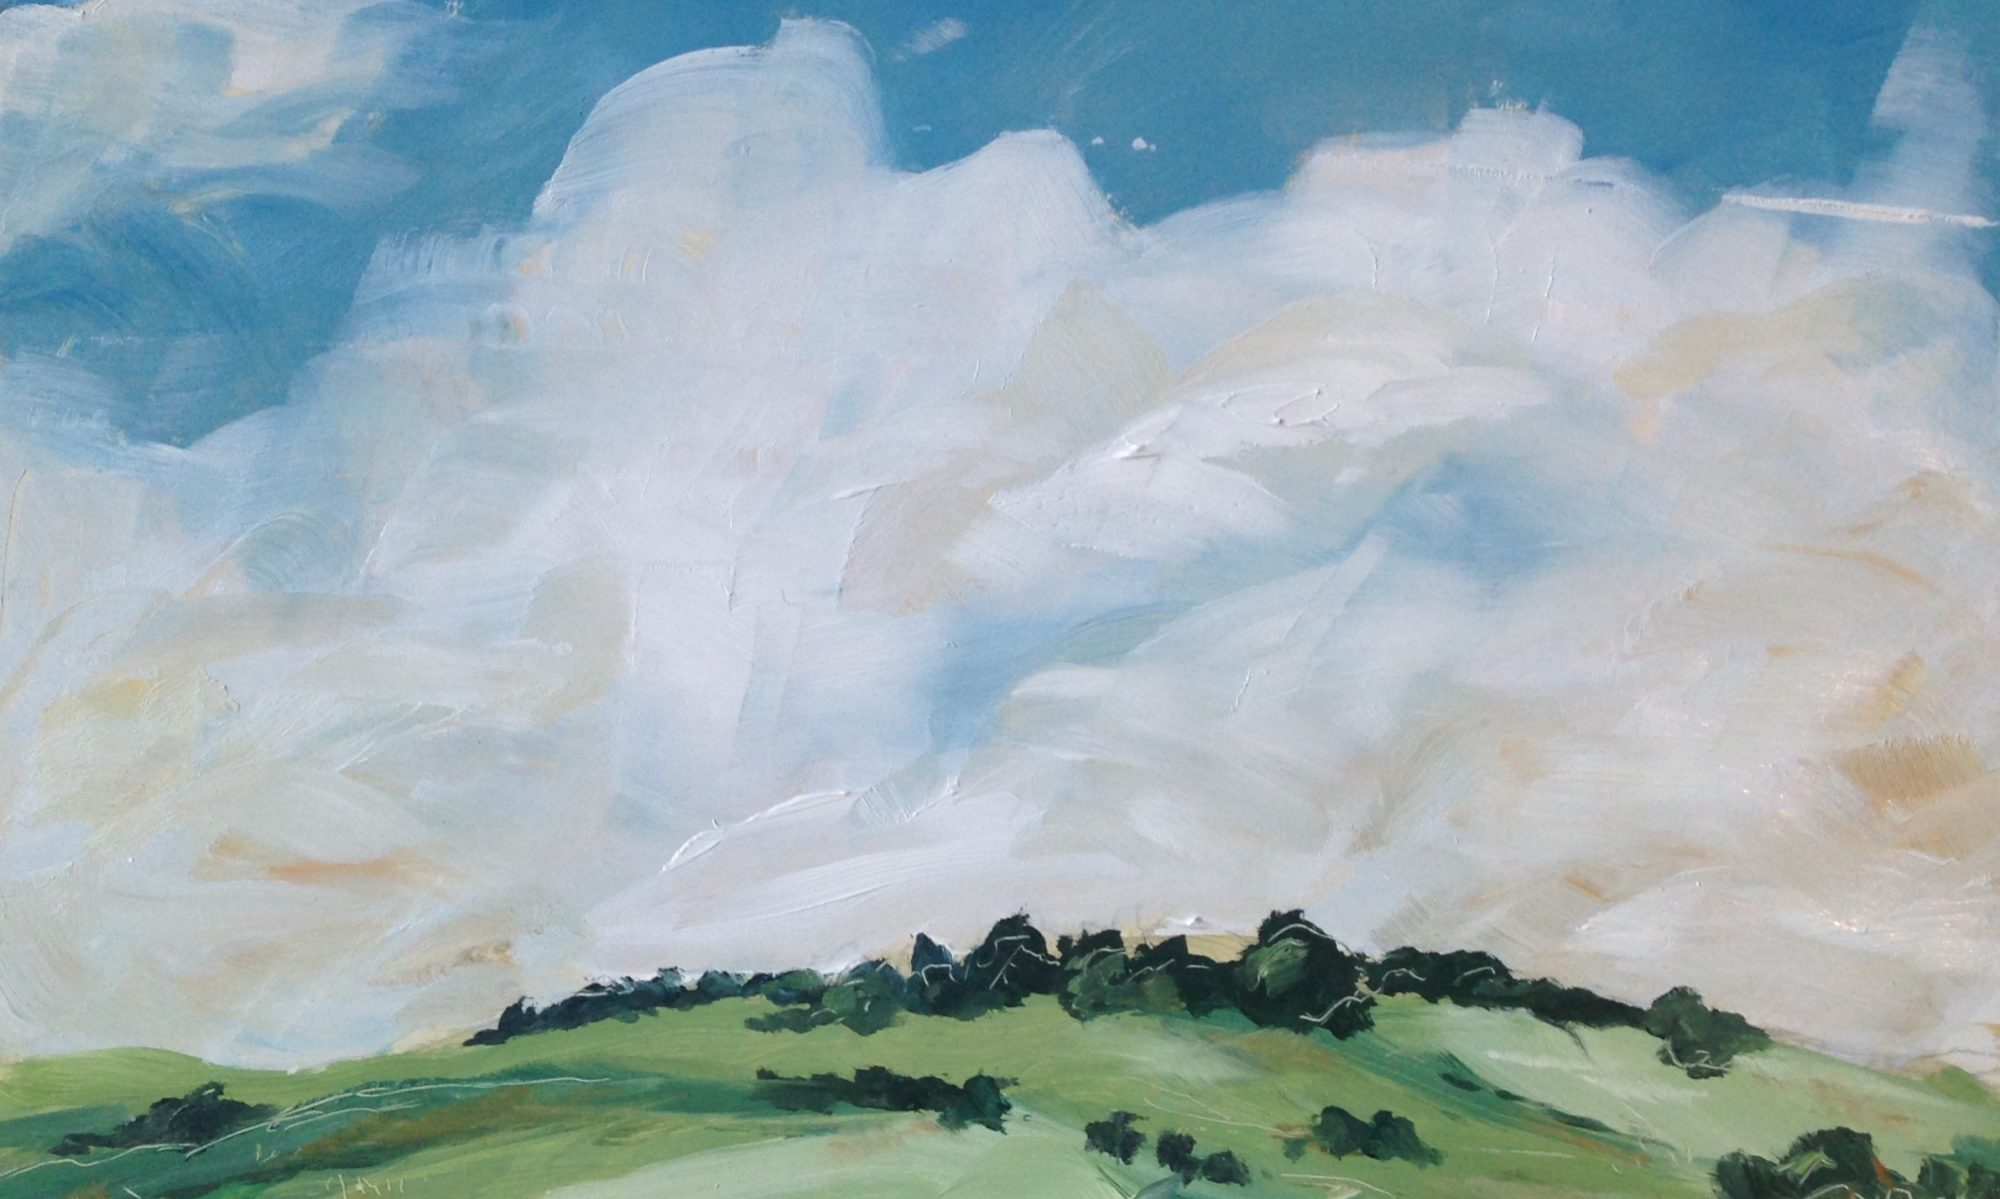 Landscape in oil paint by artist Michael Statham